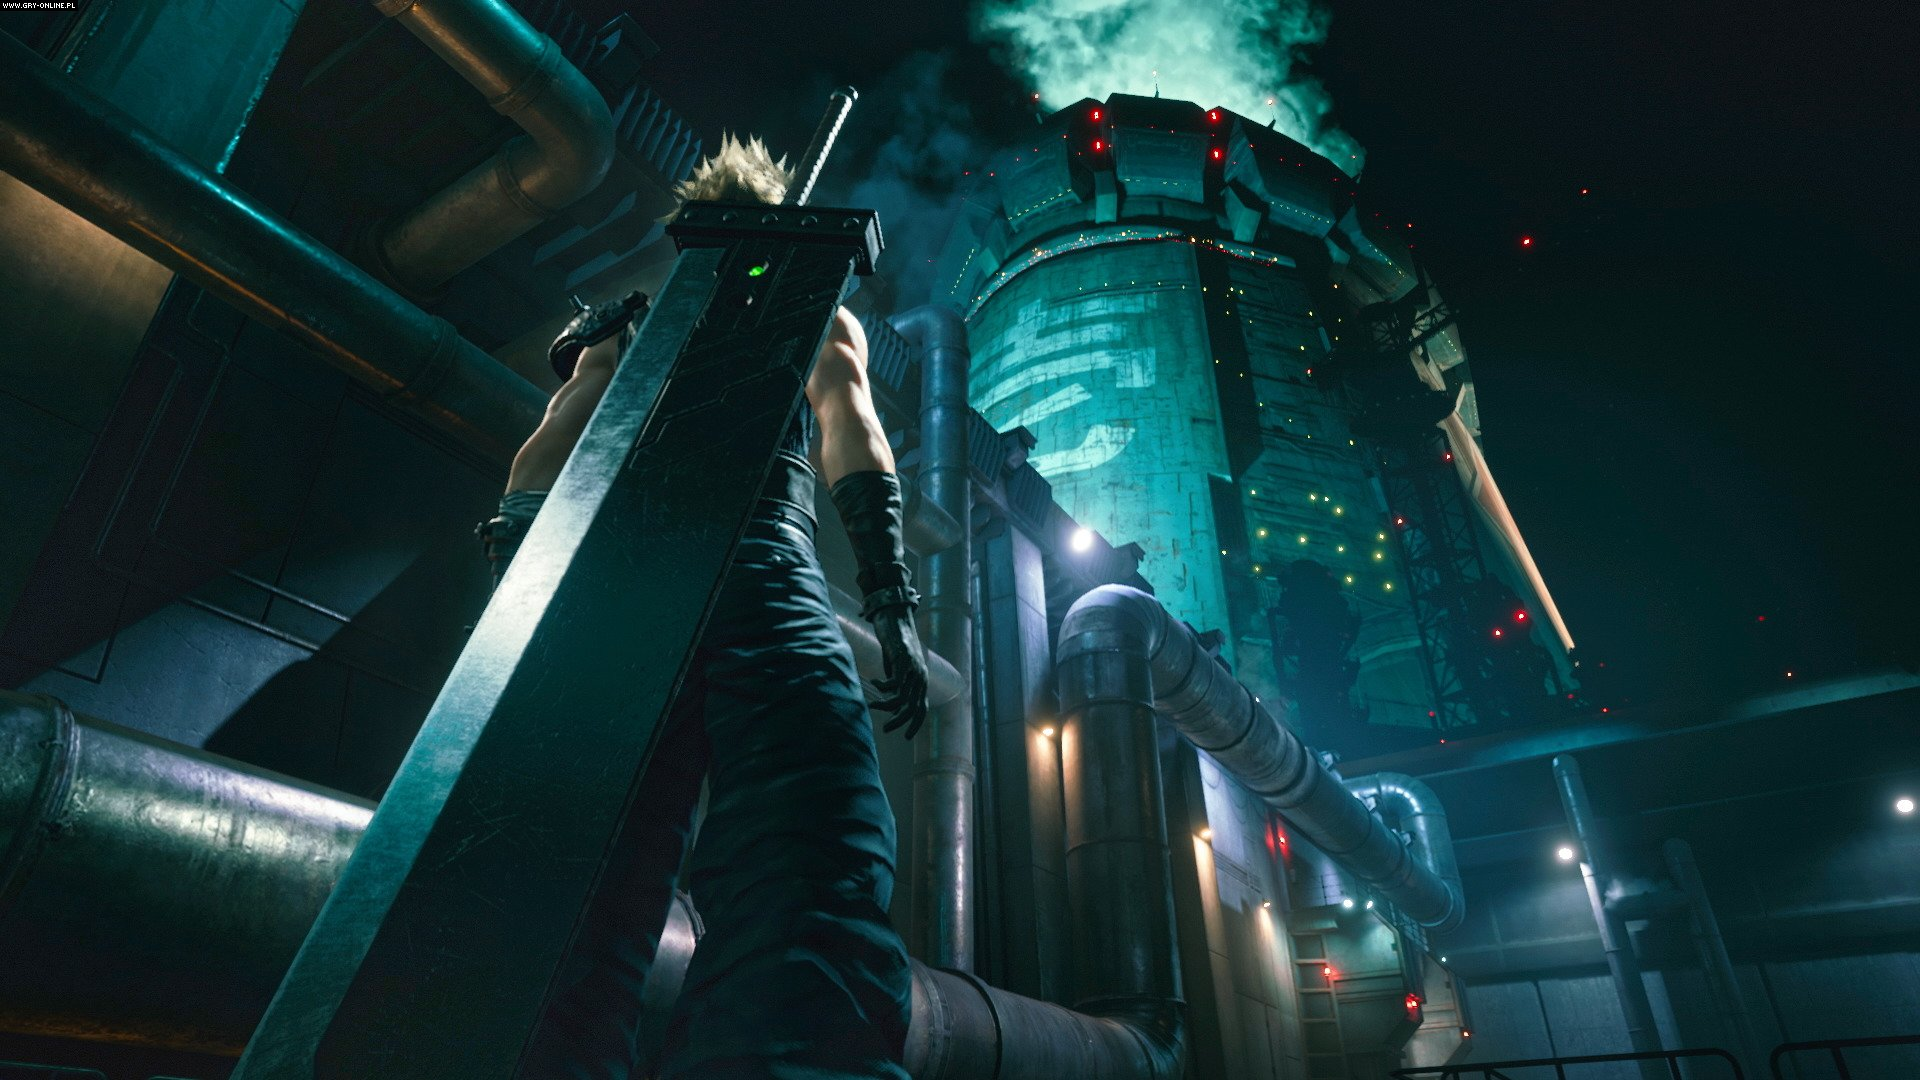 Final Fantasy VII Remake PS4 Games Image 89/102, Square-Enix / Eidos